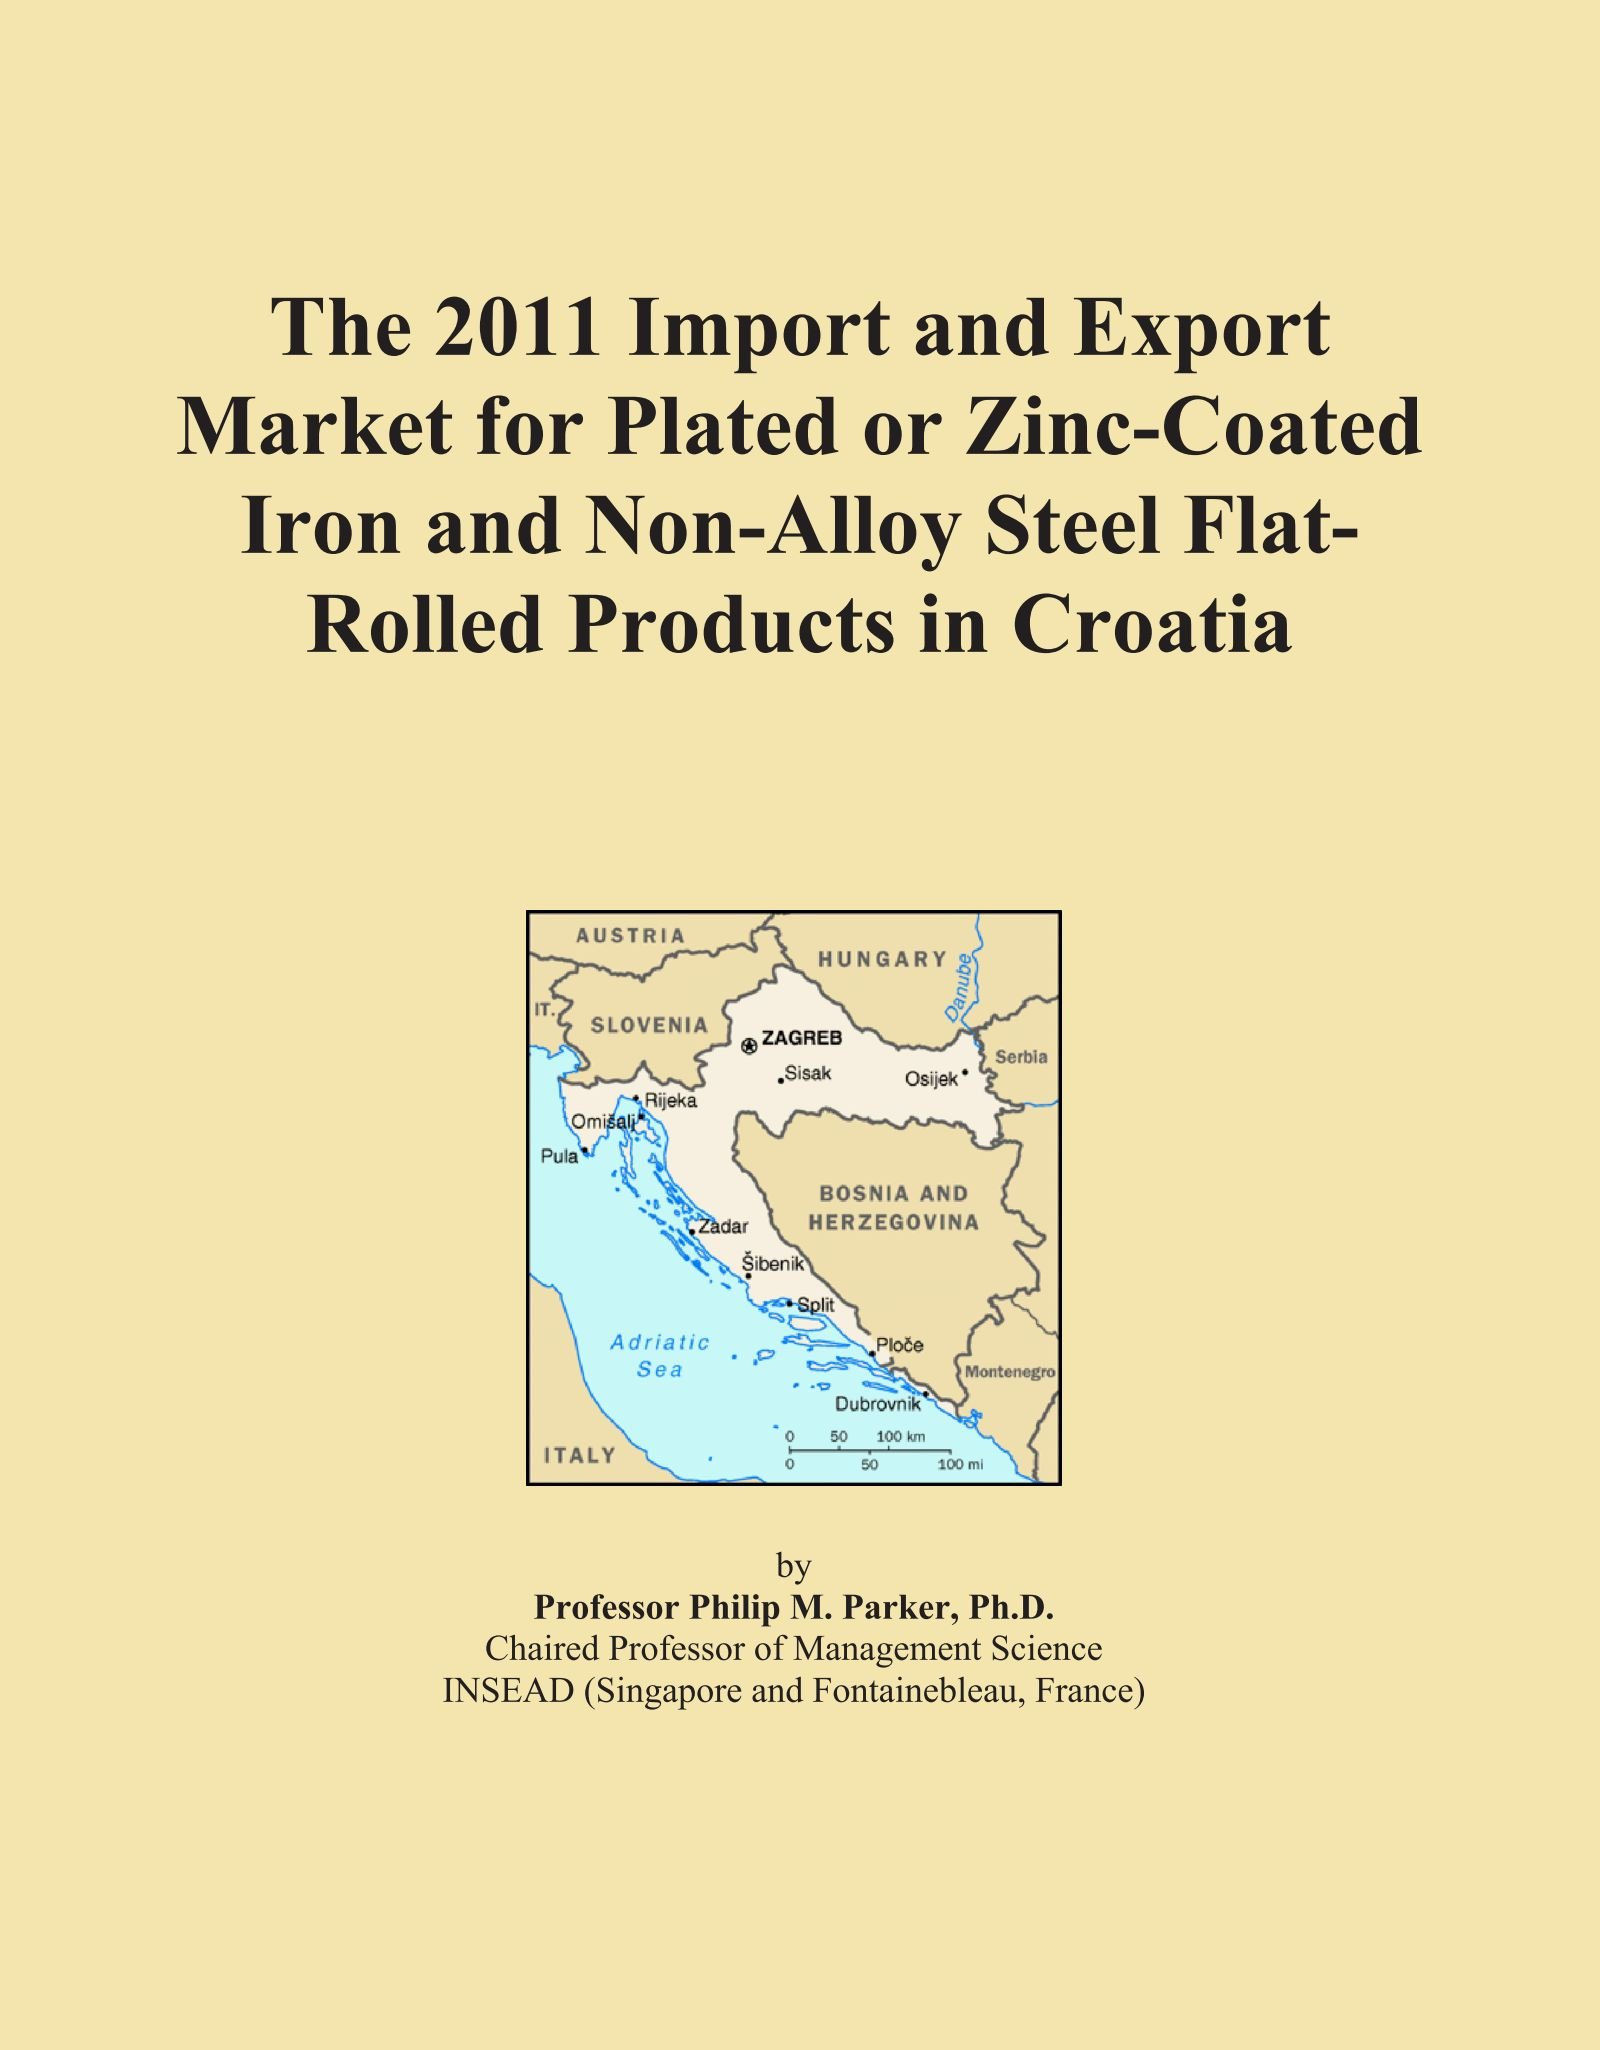 Download The 2011 Import and Export Market for Plated or Zinc-Coated Iron and Non-Alloy Steel Flat-Rolled Products in Croatia PDF